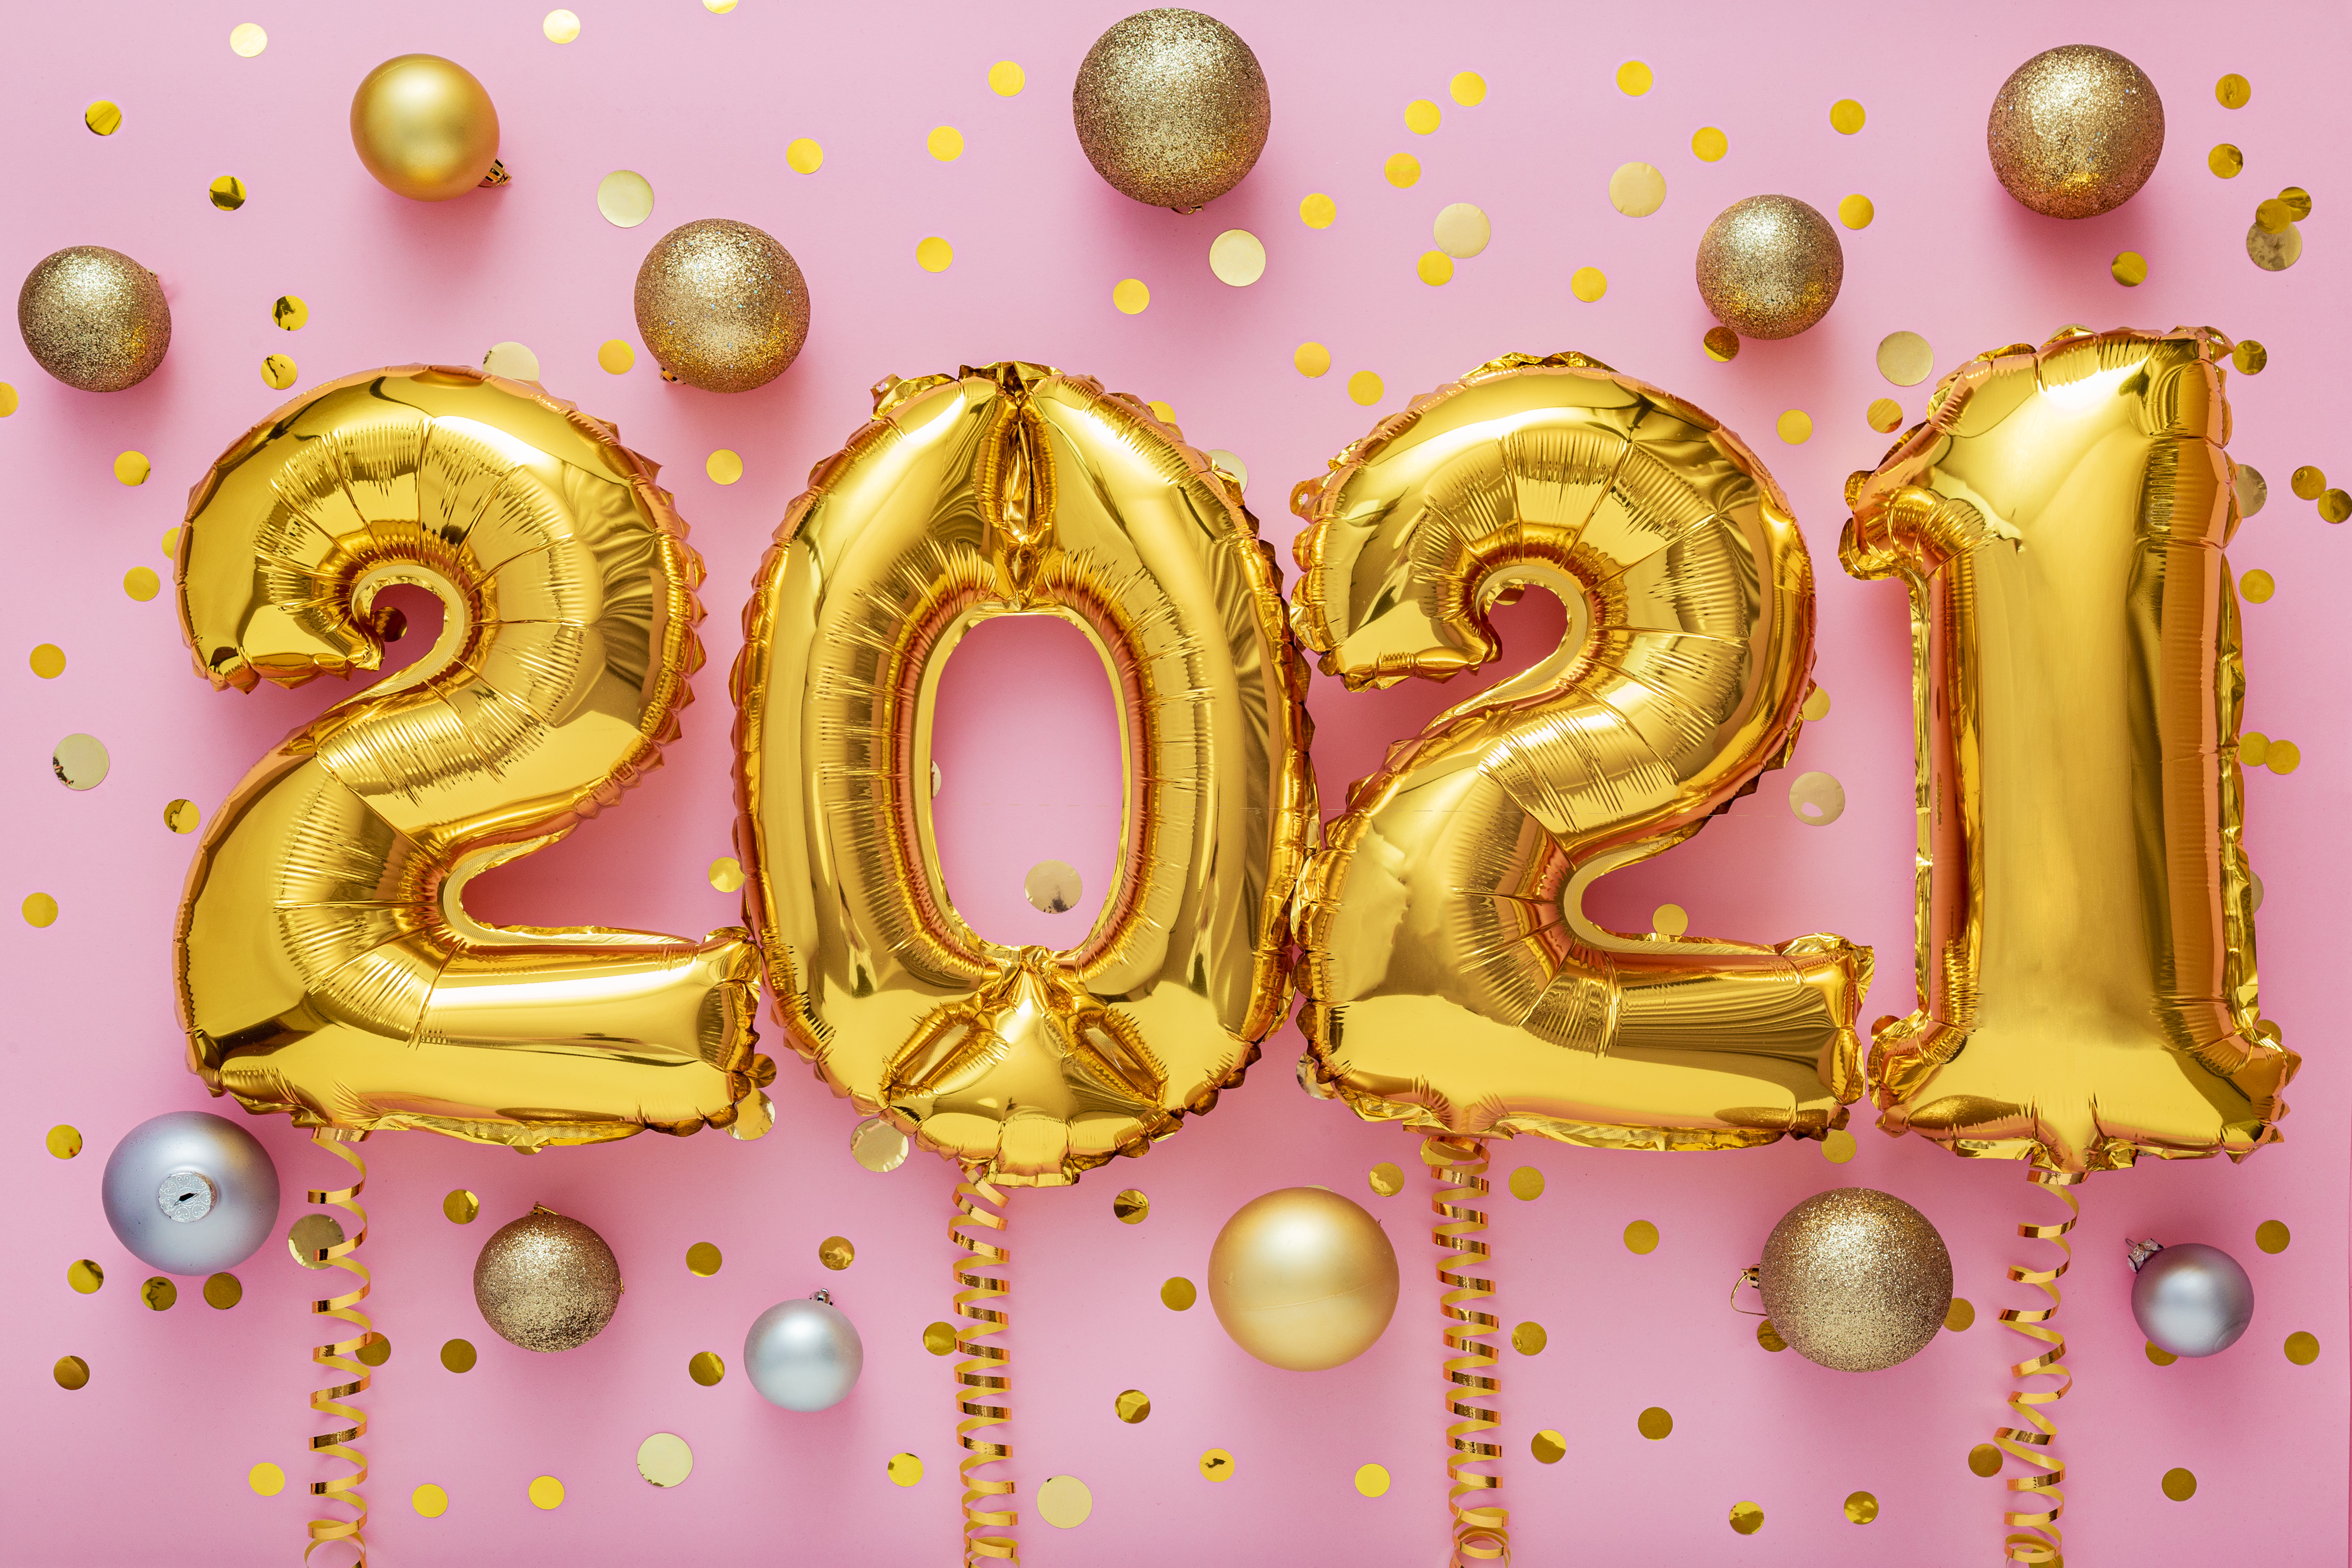 Image of 2021 balloons to illustrate tips for staying on track in the cake business in the new year.